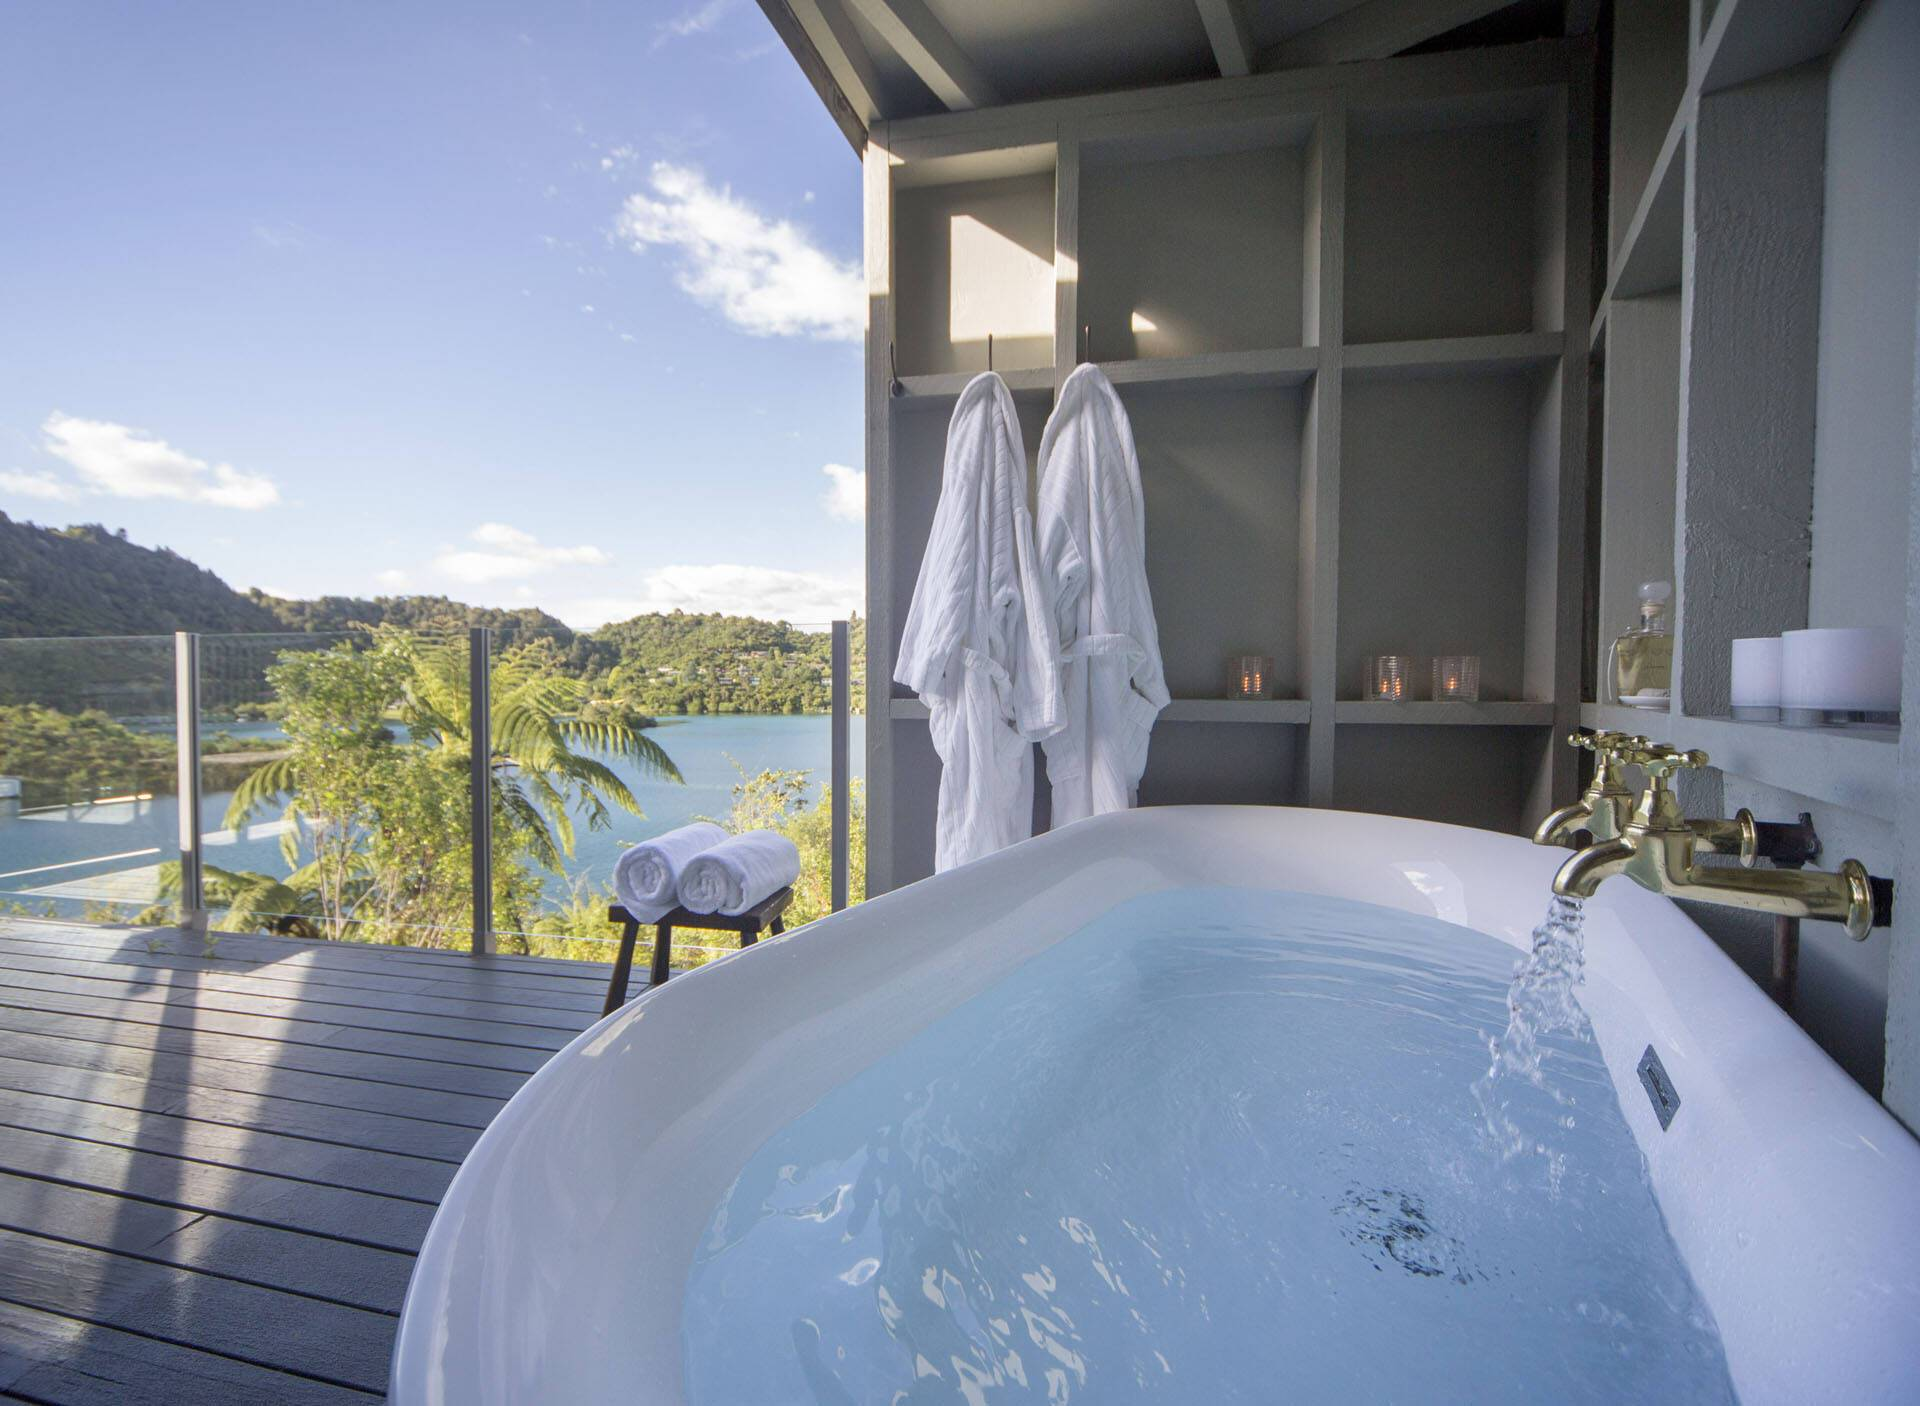 Solitaire Lodge New Zealand Salle Bains